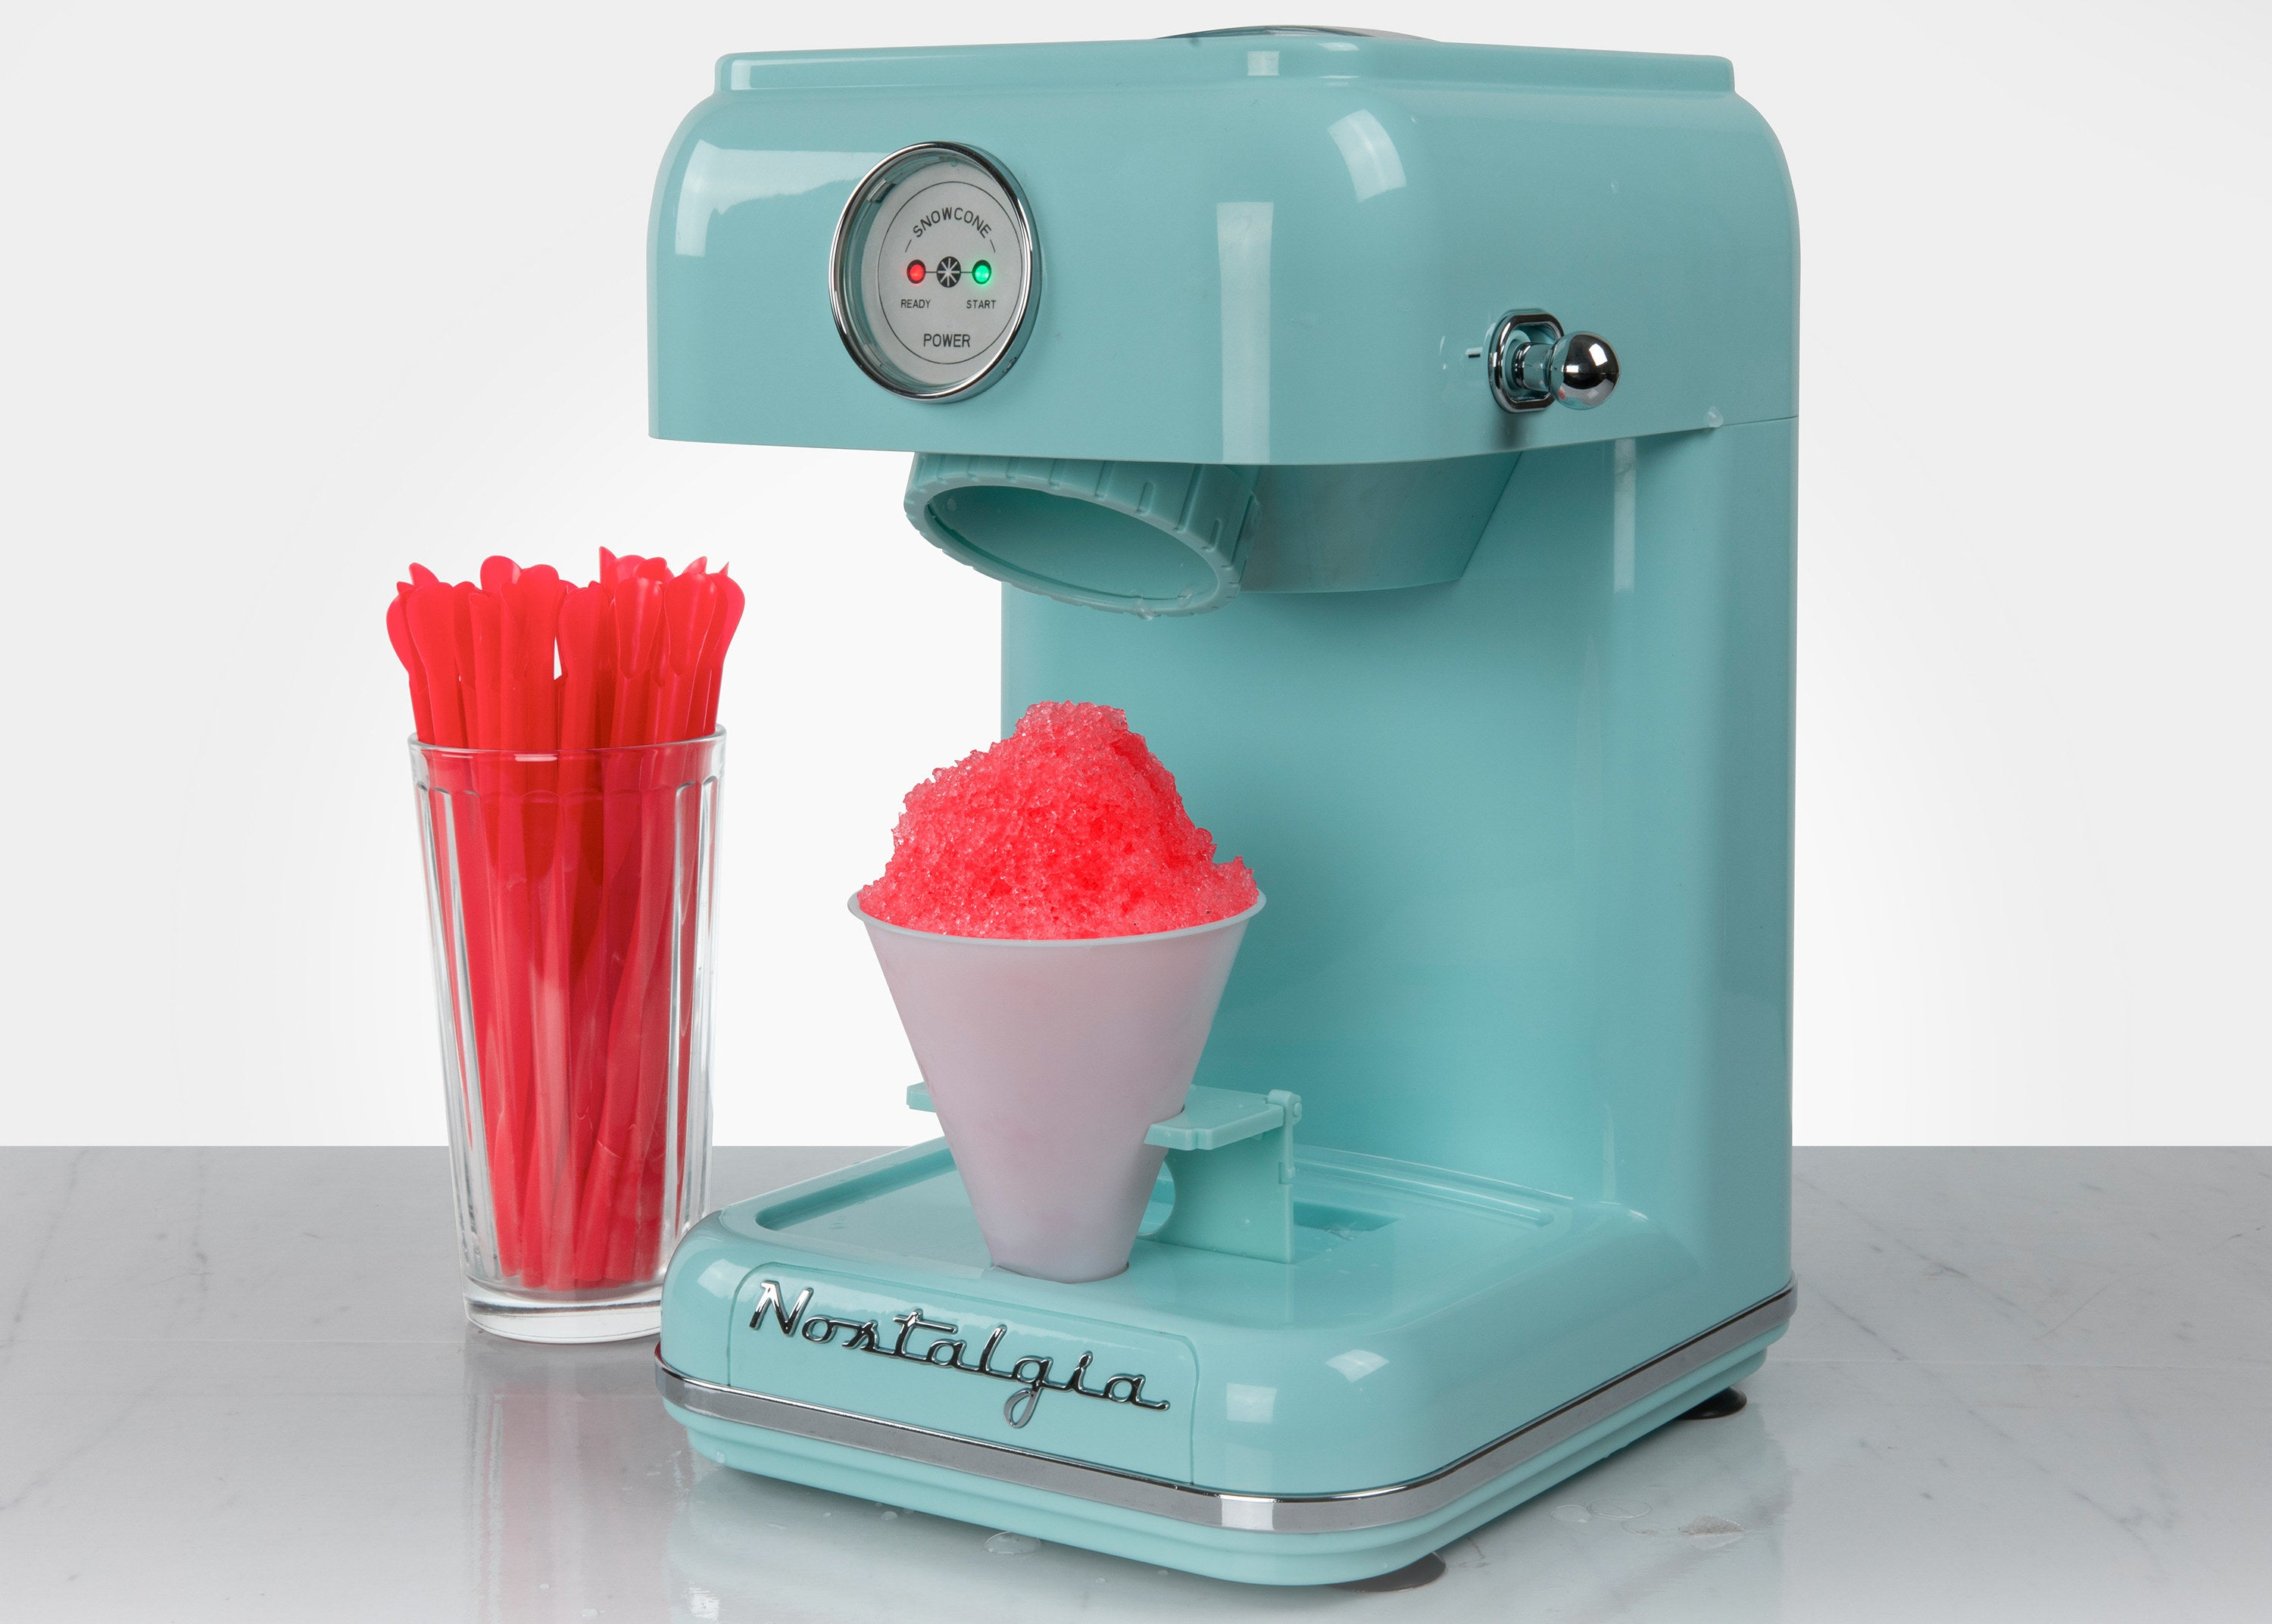 a small, aqua snow cone maker that deposits shaved iced and holds paper cones